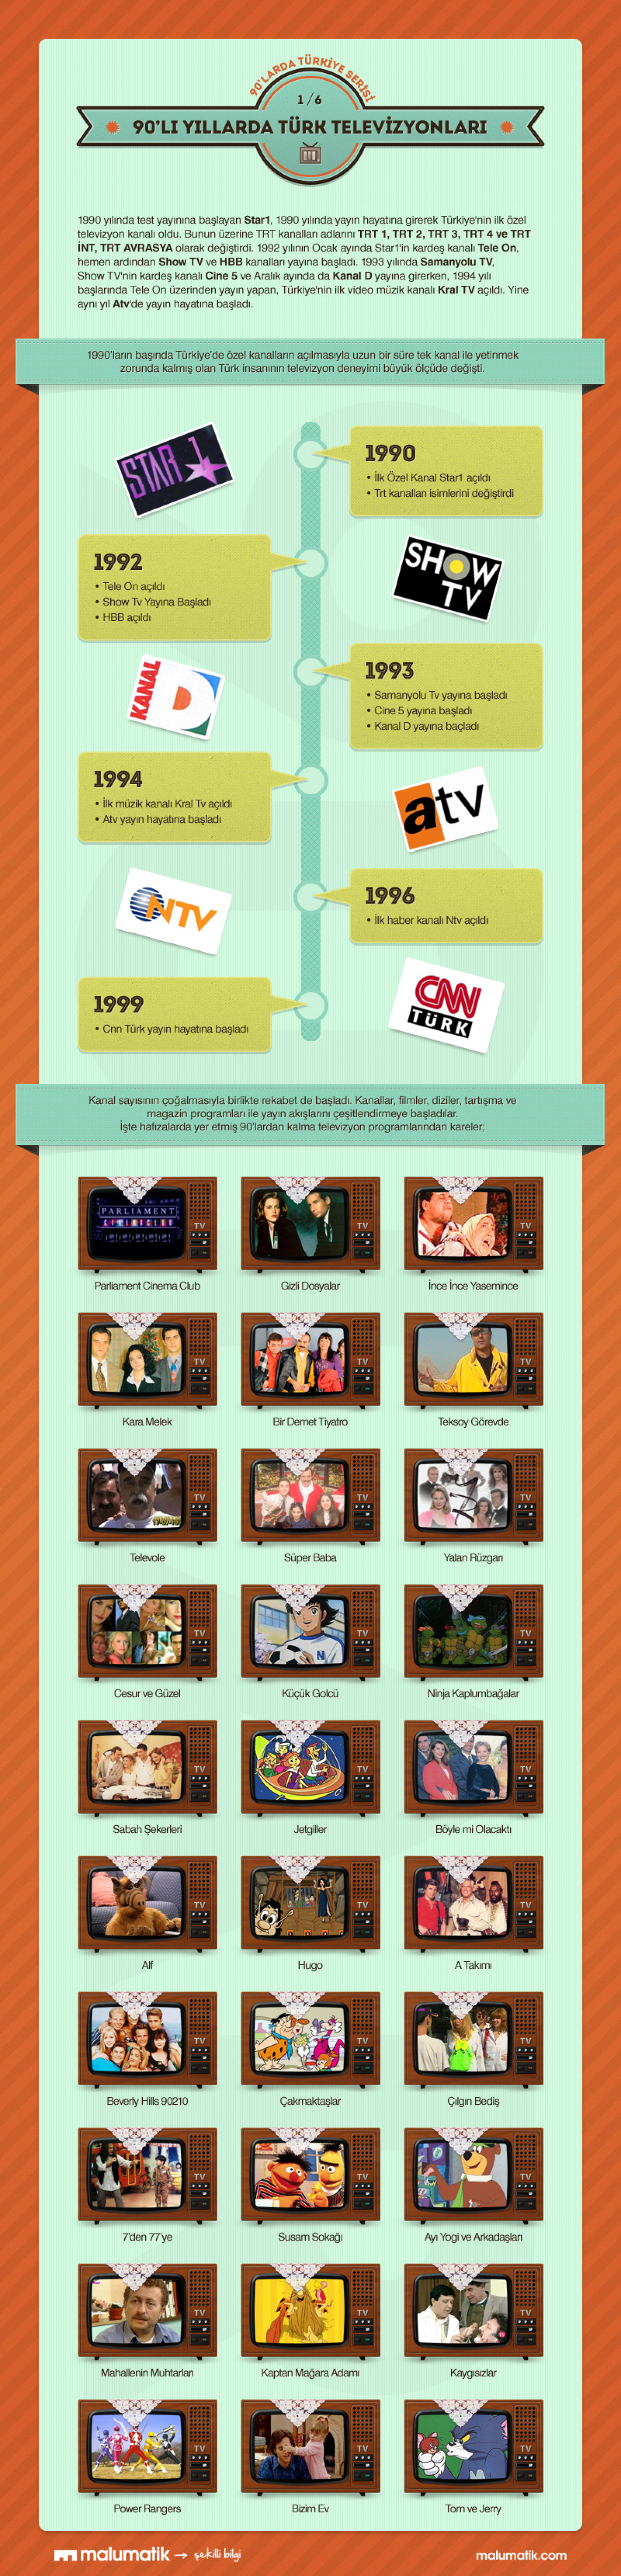 Turkish Televisions in 90's Infographic